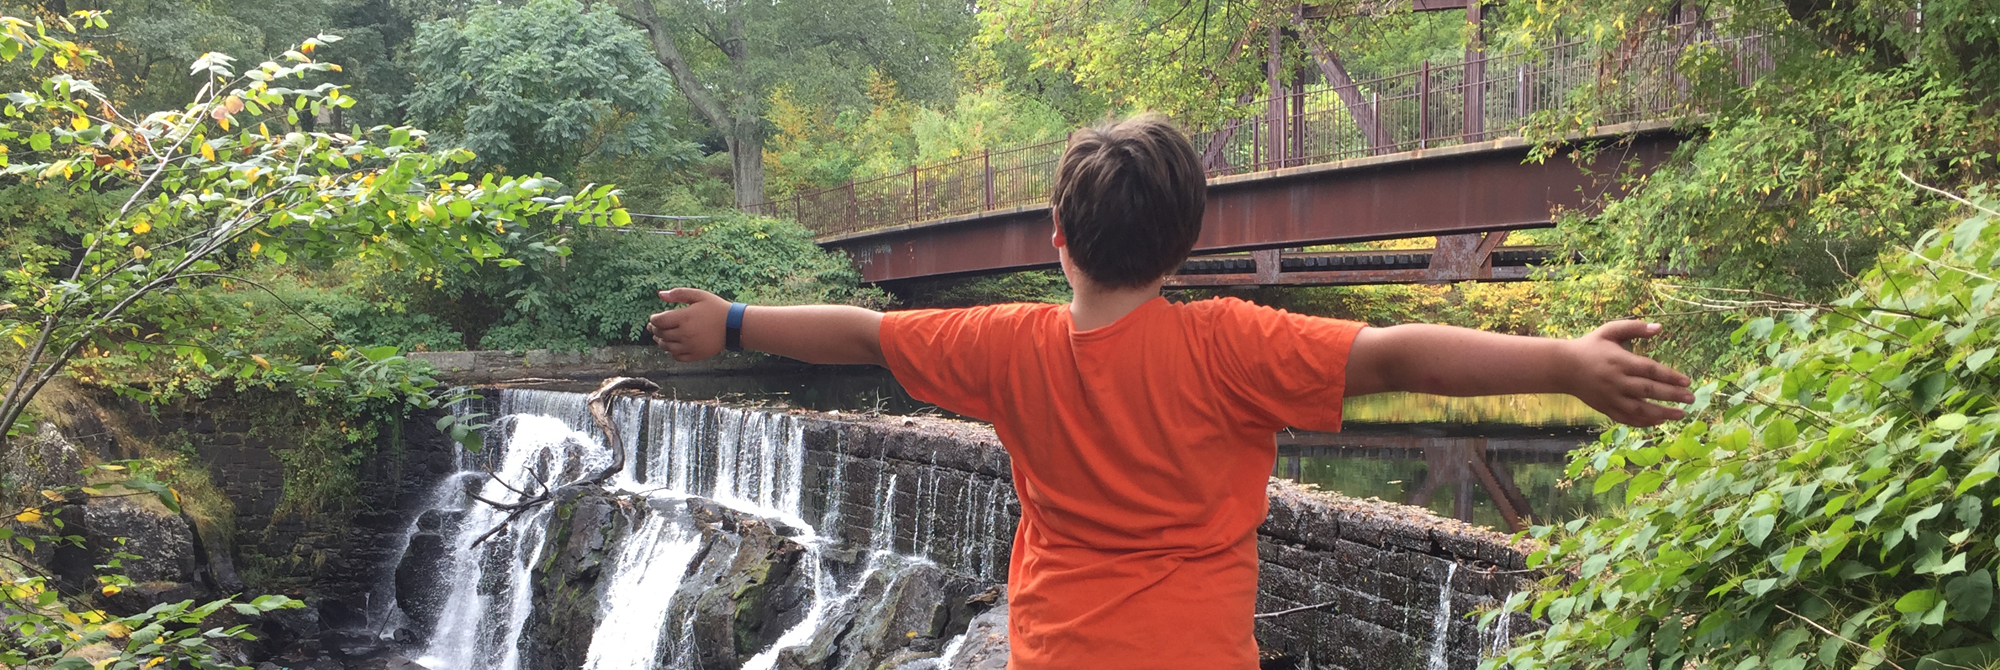 Boy with open arms at Uncas Falls in Norwich